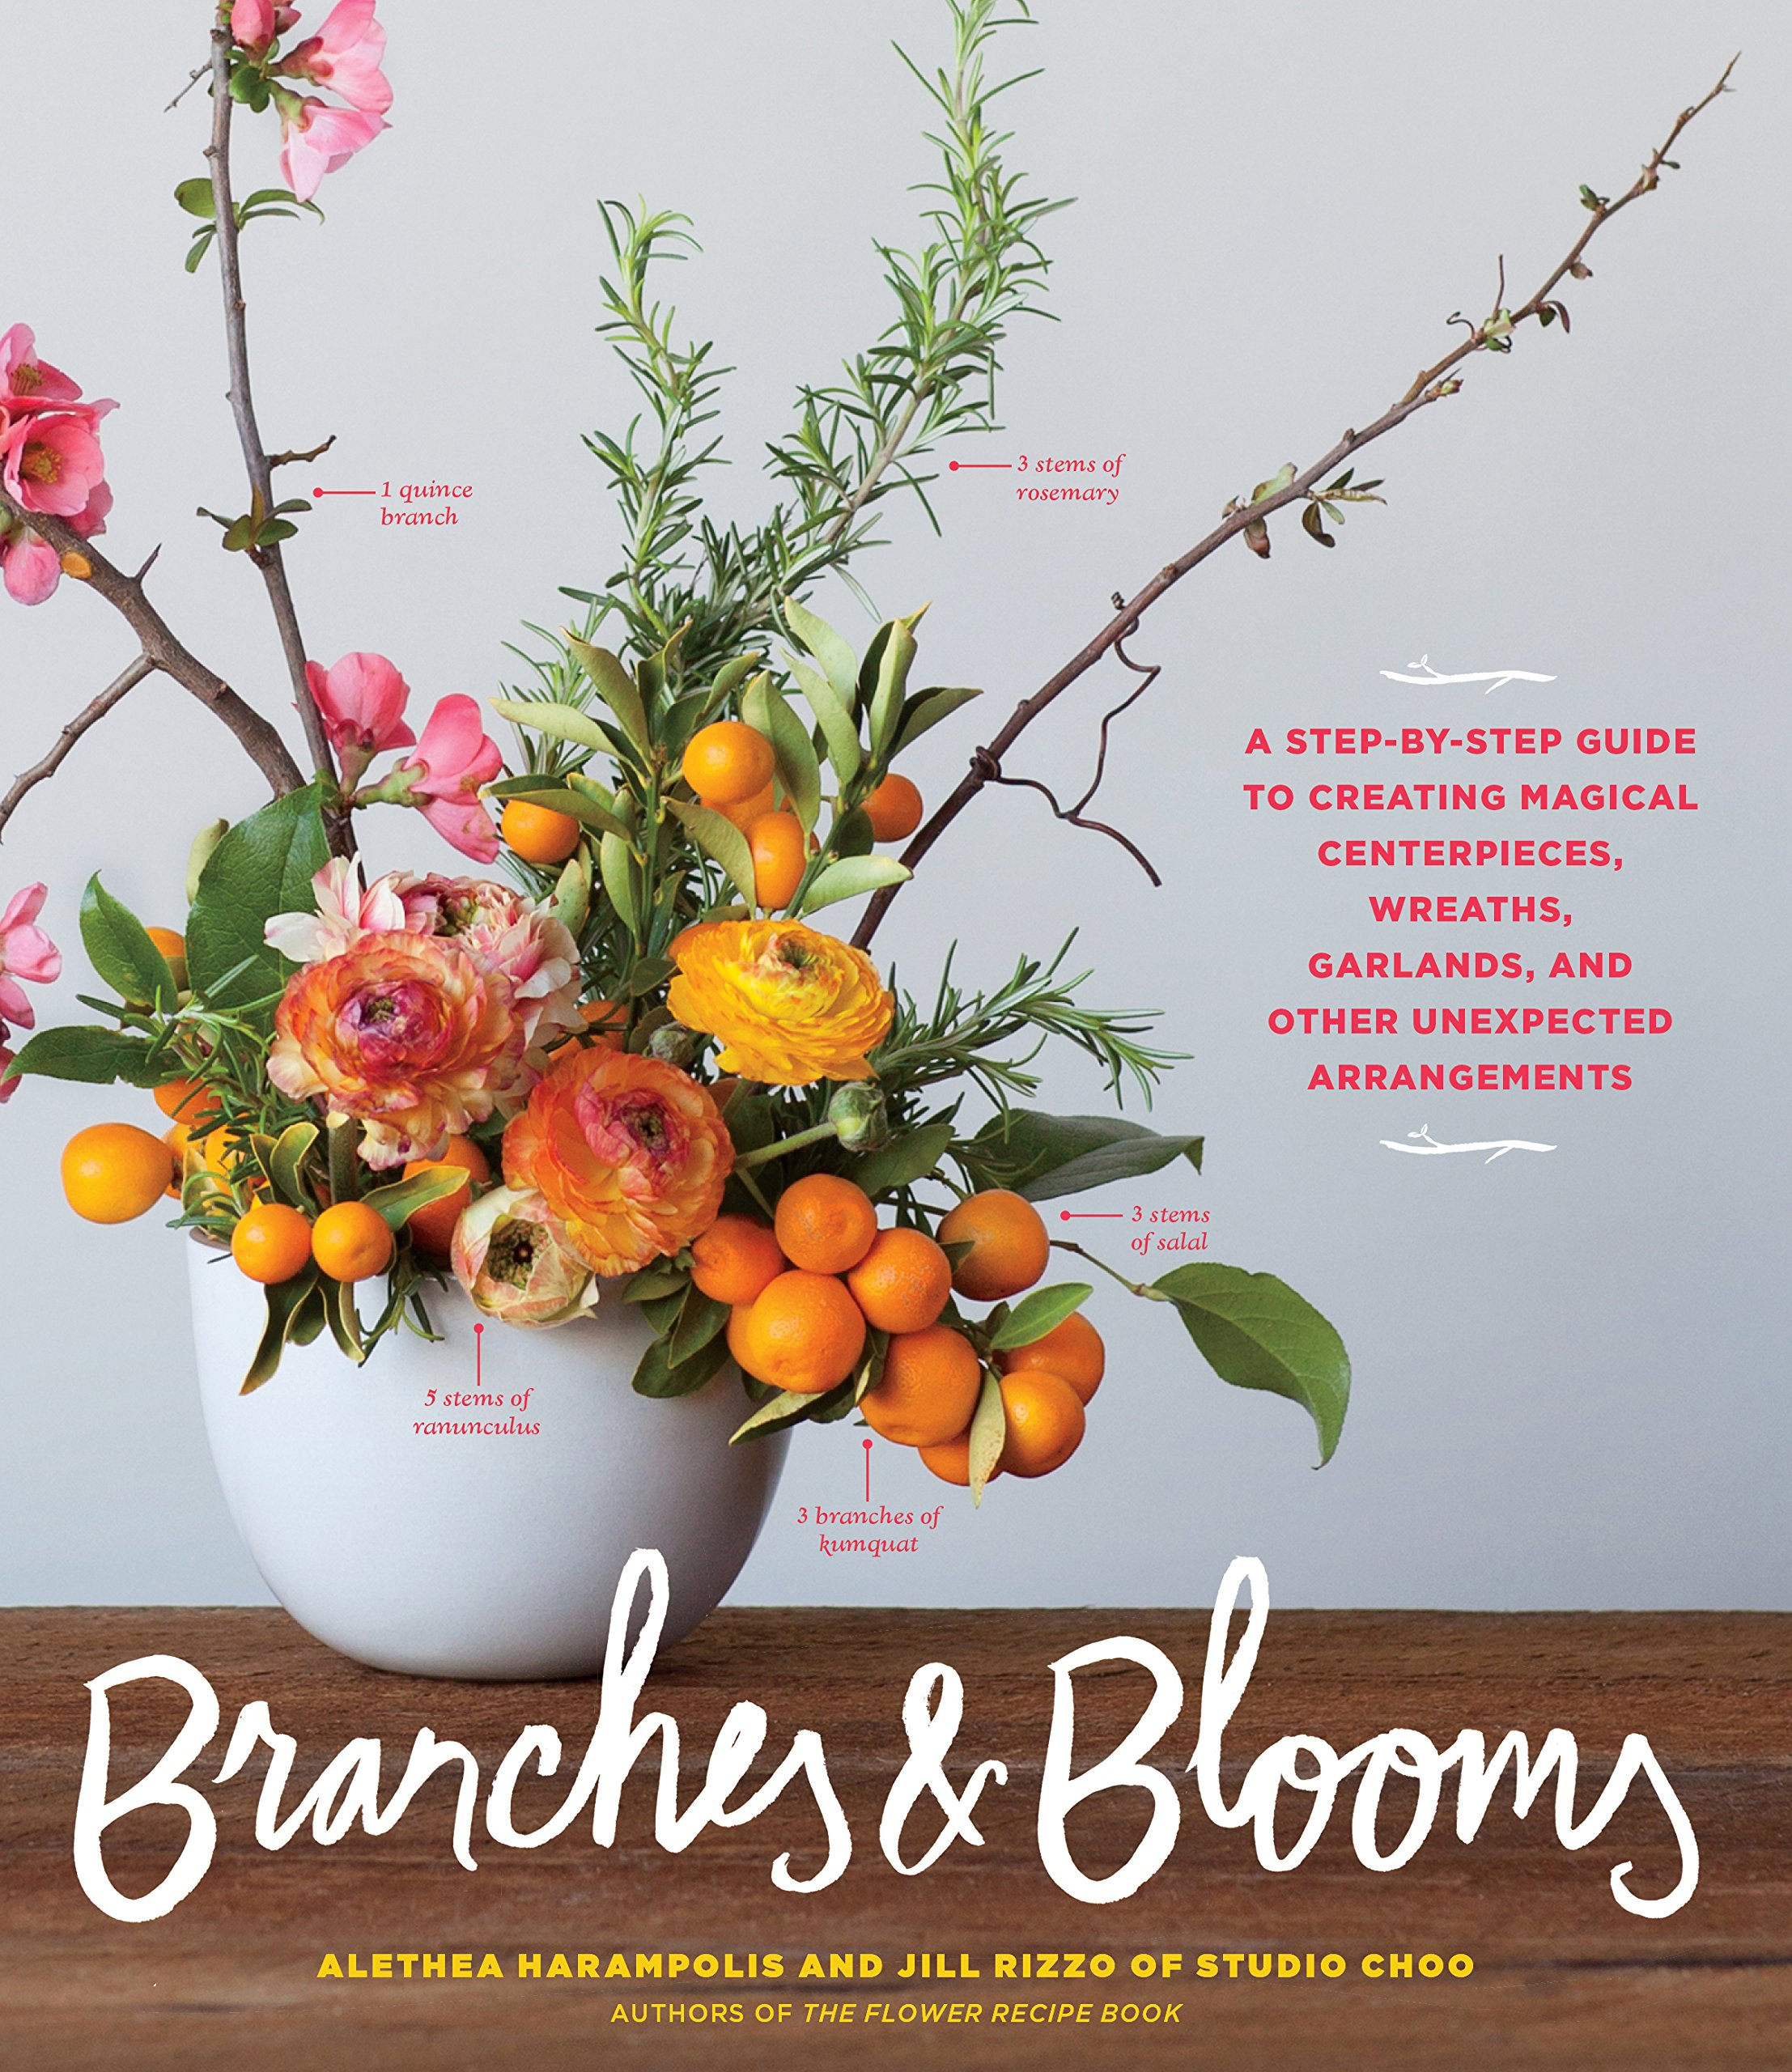 Branches & Blooms: A Step-by-Step Guide to Creating Magical Centerpieces, Wreaths, Garlands, and Other Unexpected Arrangements by Alethea Harampolis